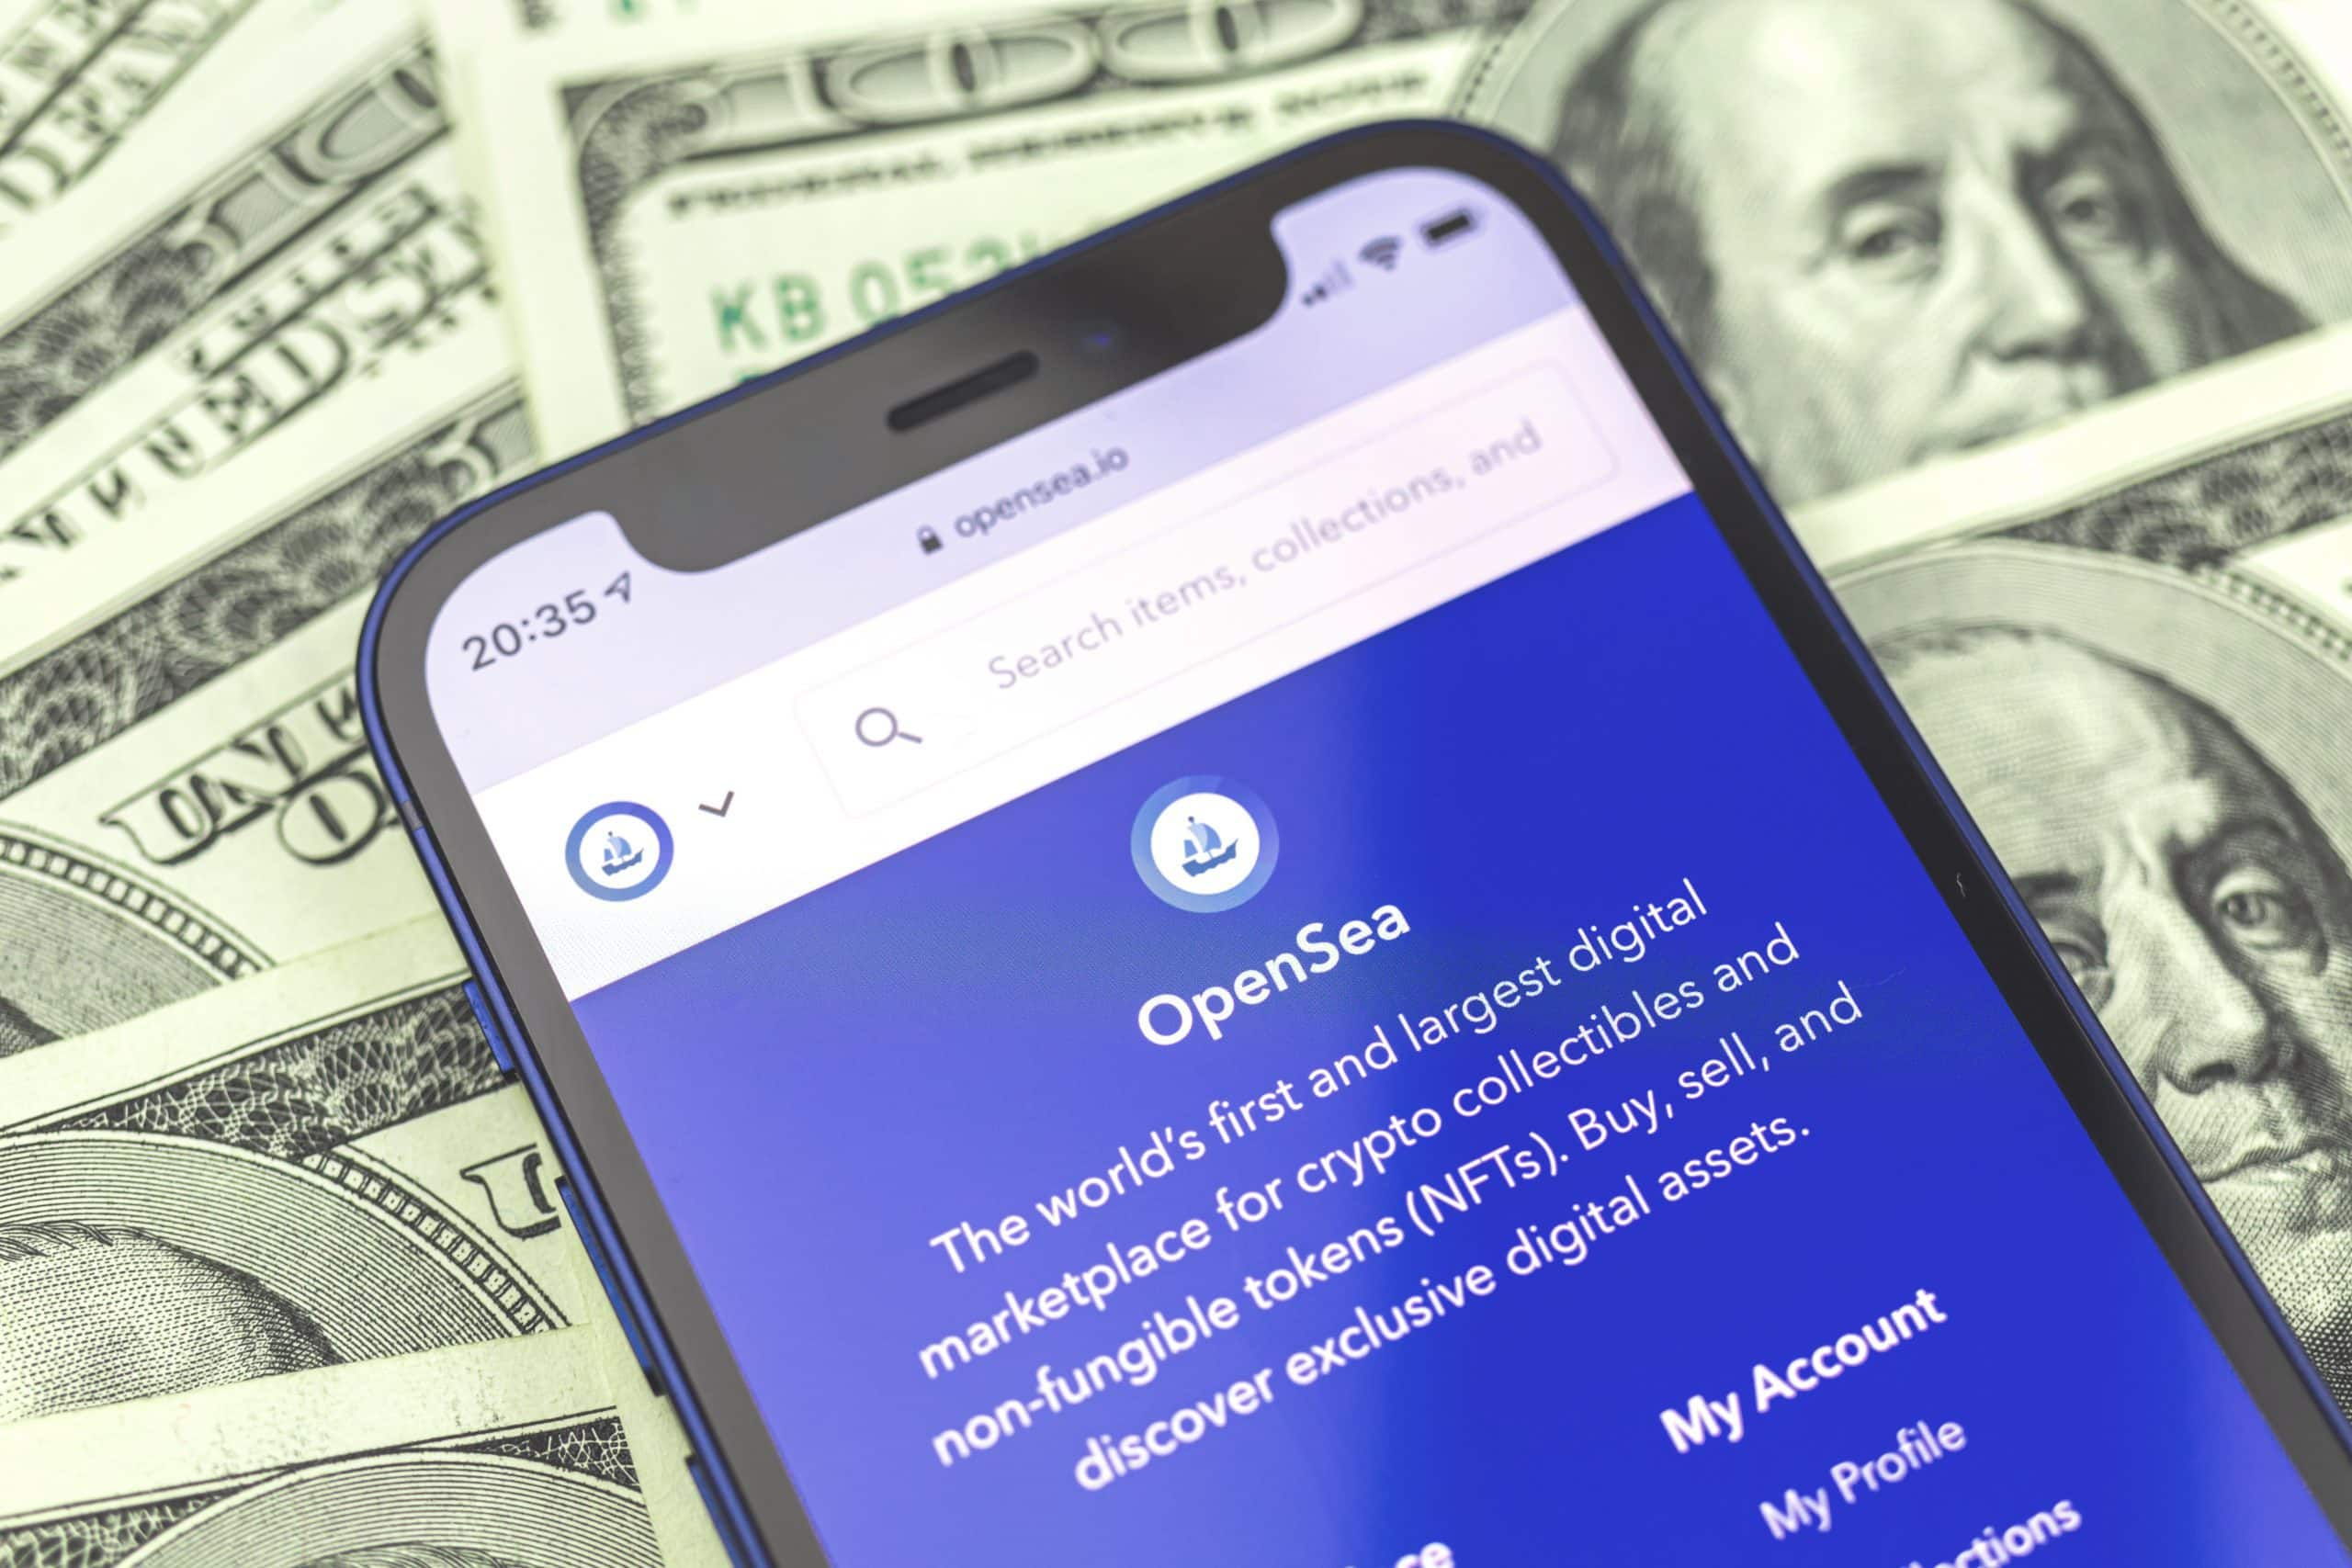 OpenSea: Insider trading is penalized by the community